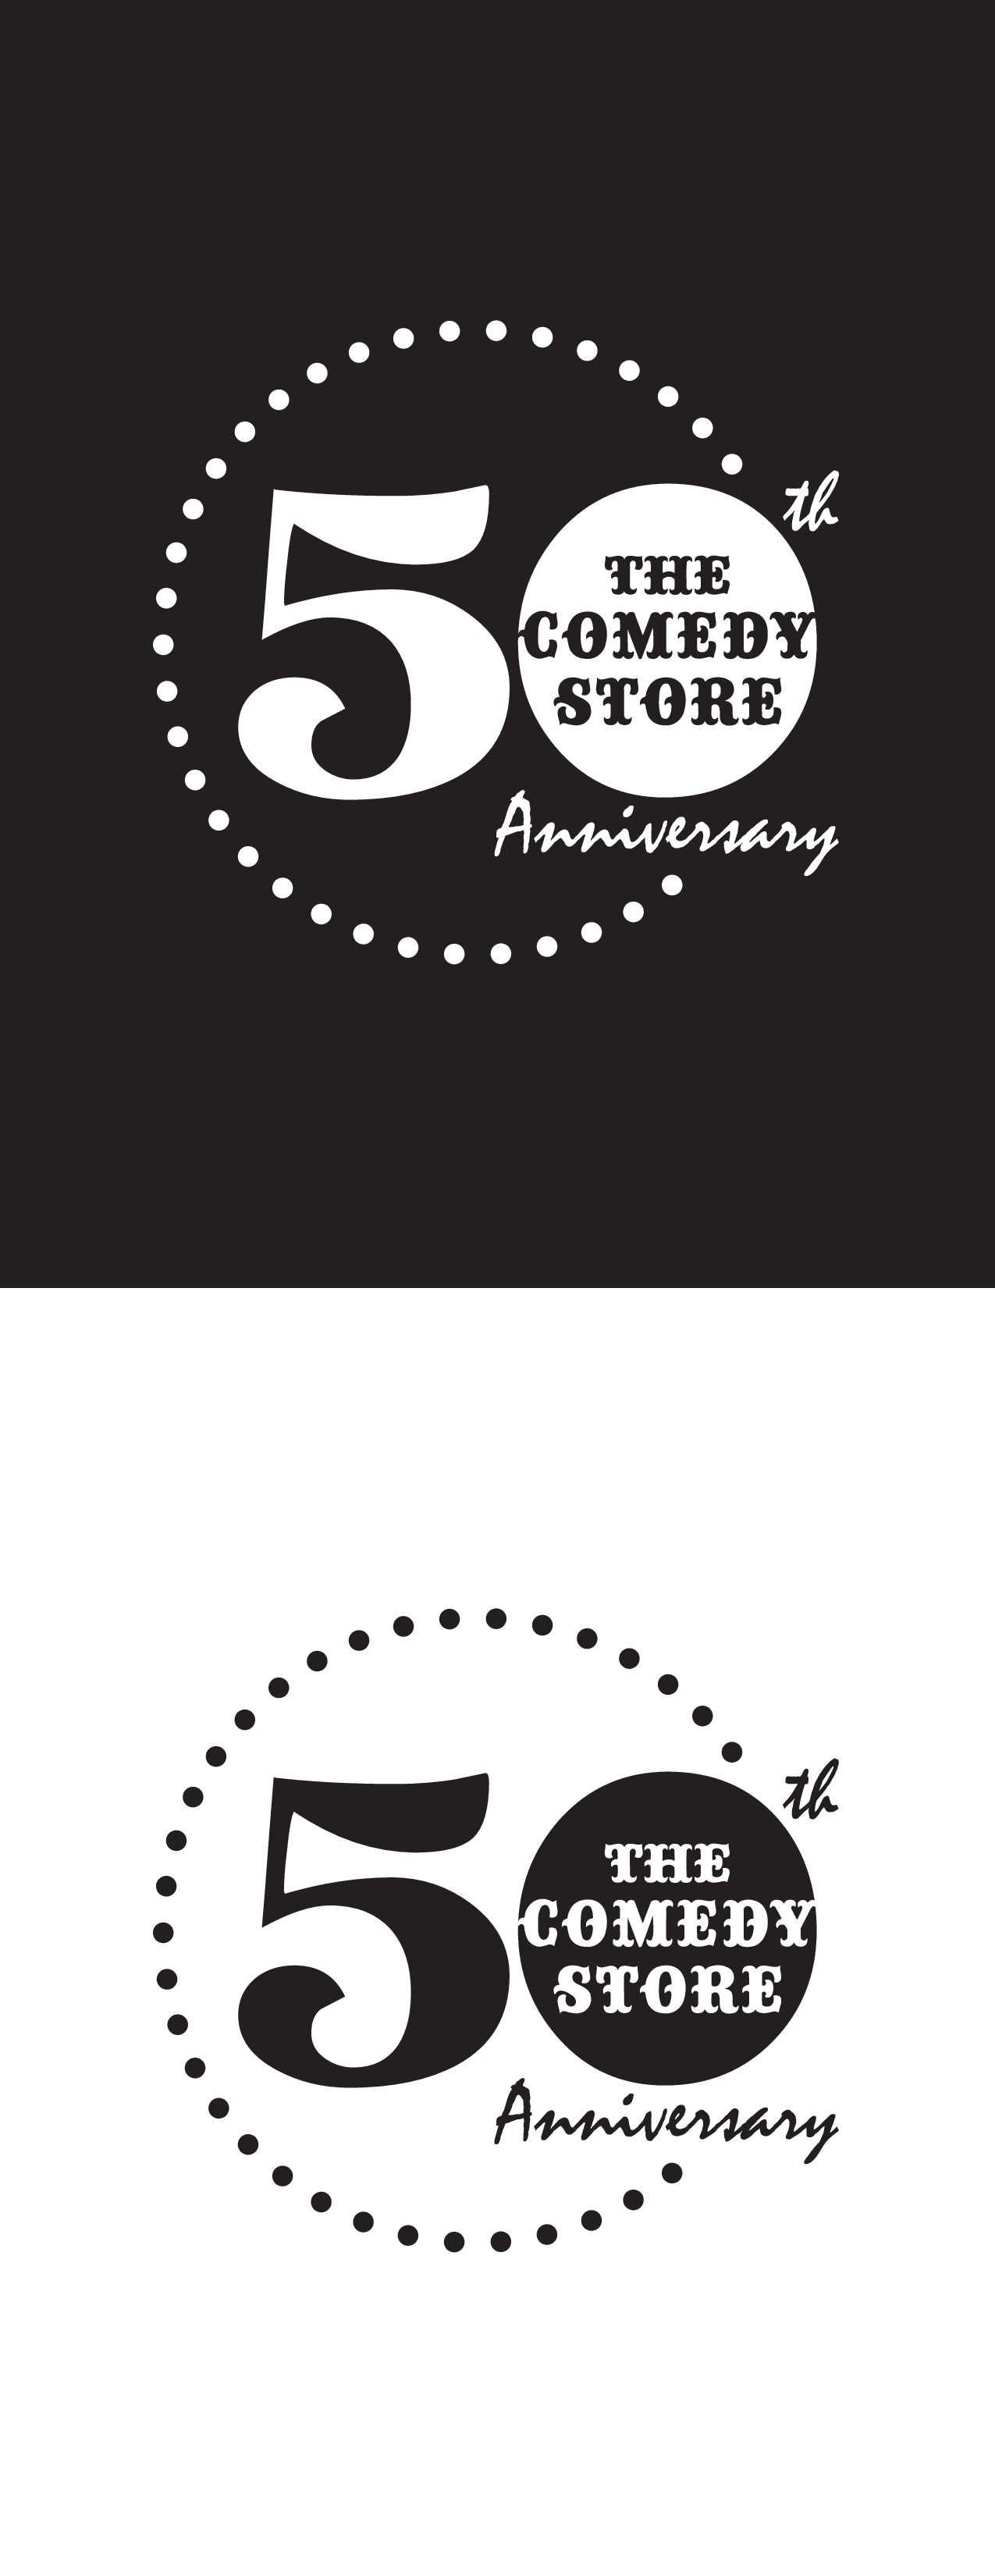 Design the 50th Anniversary image for the best comedy club in the country